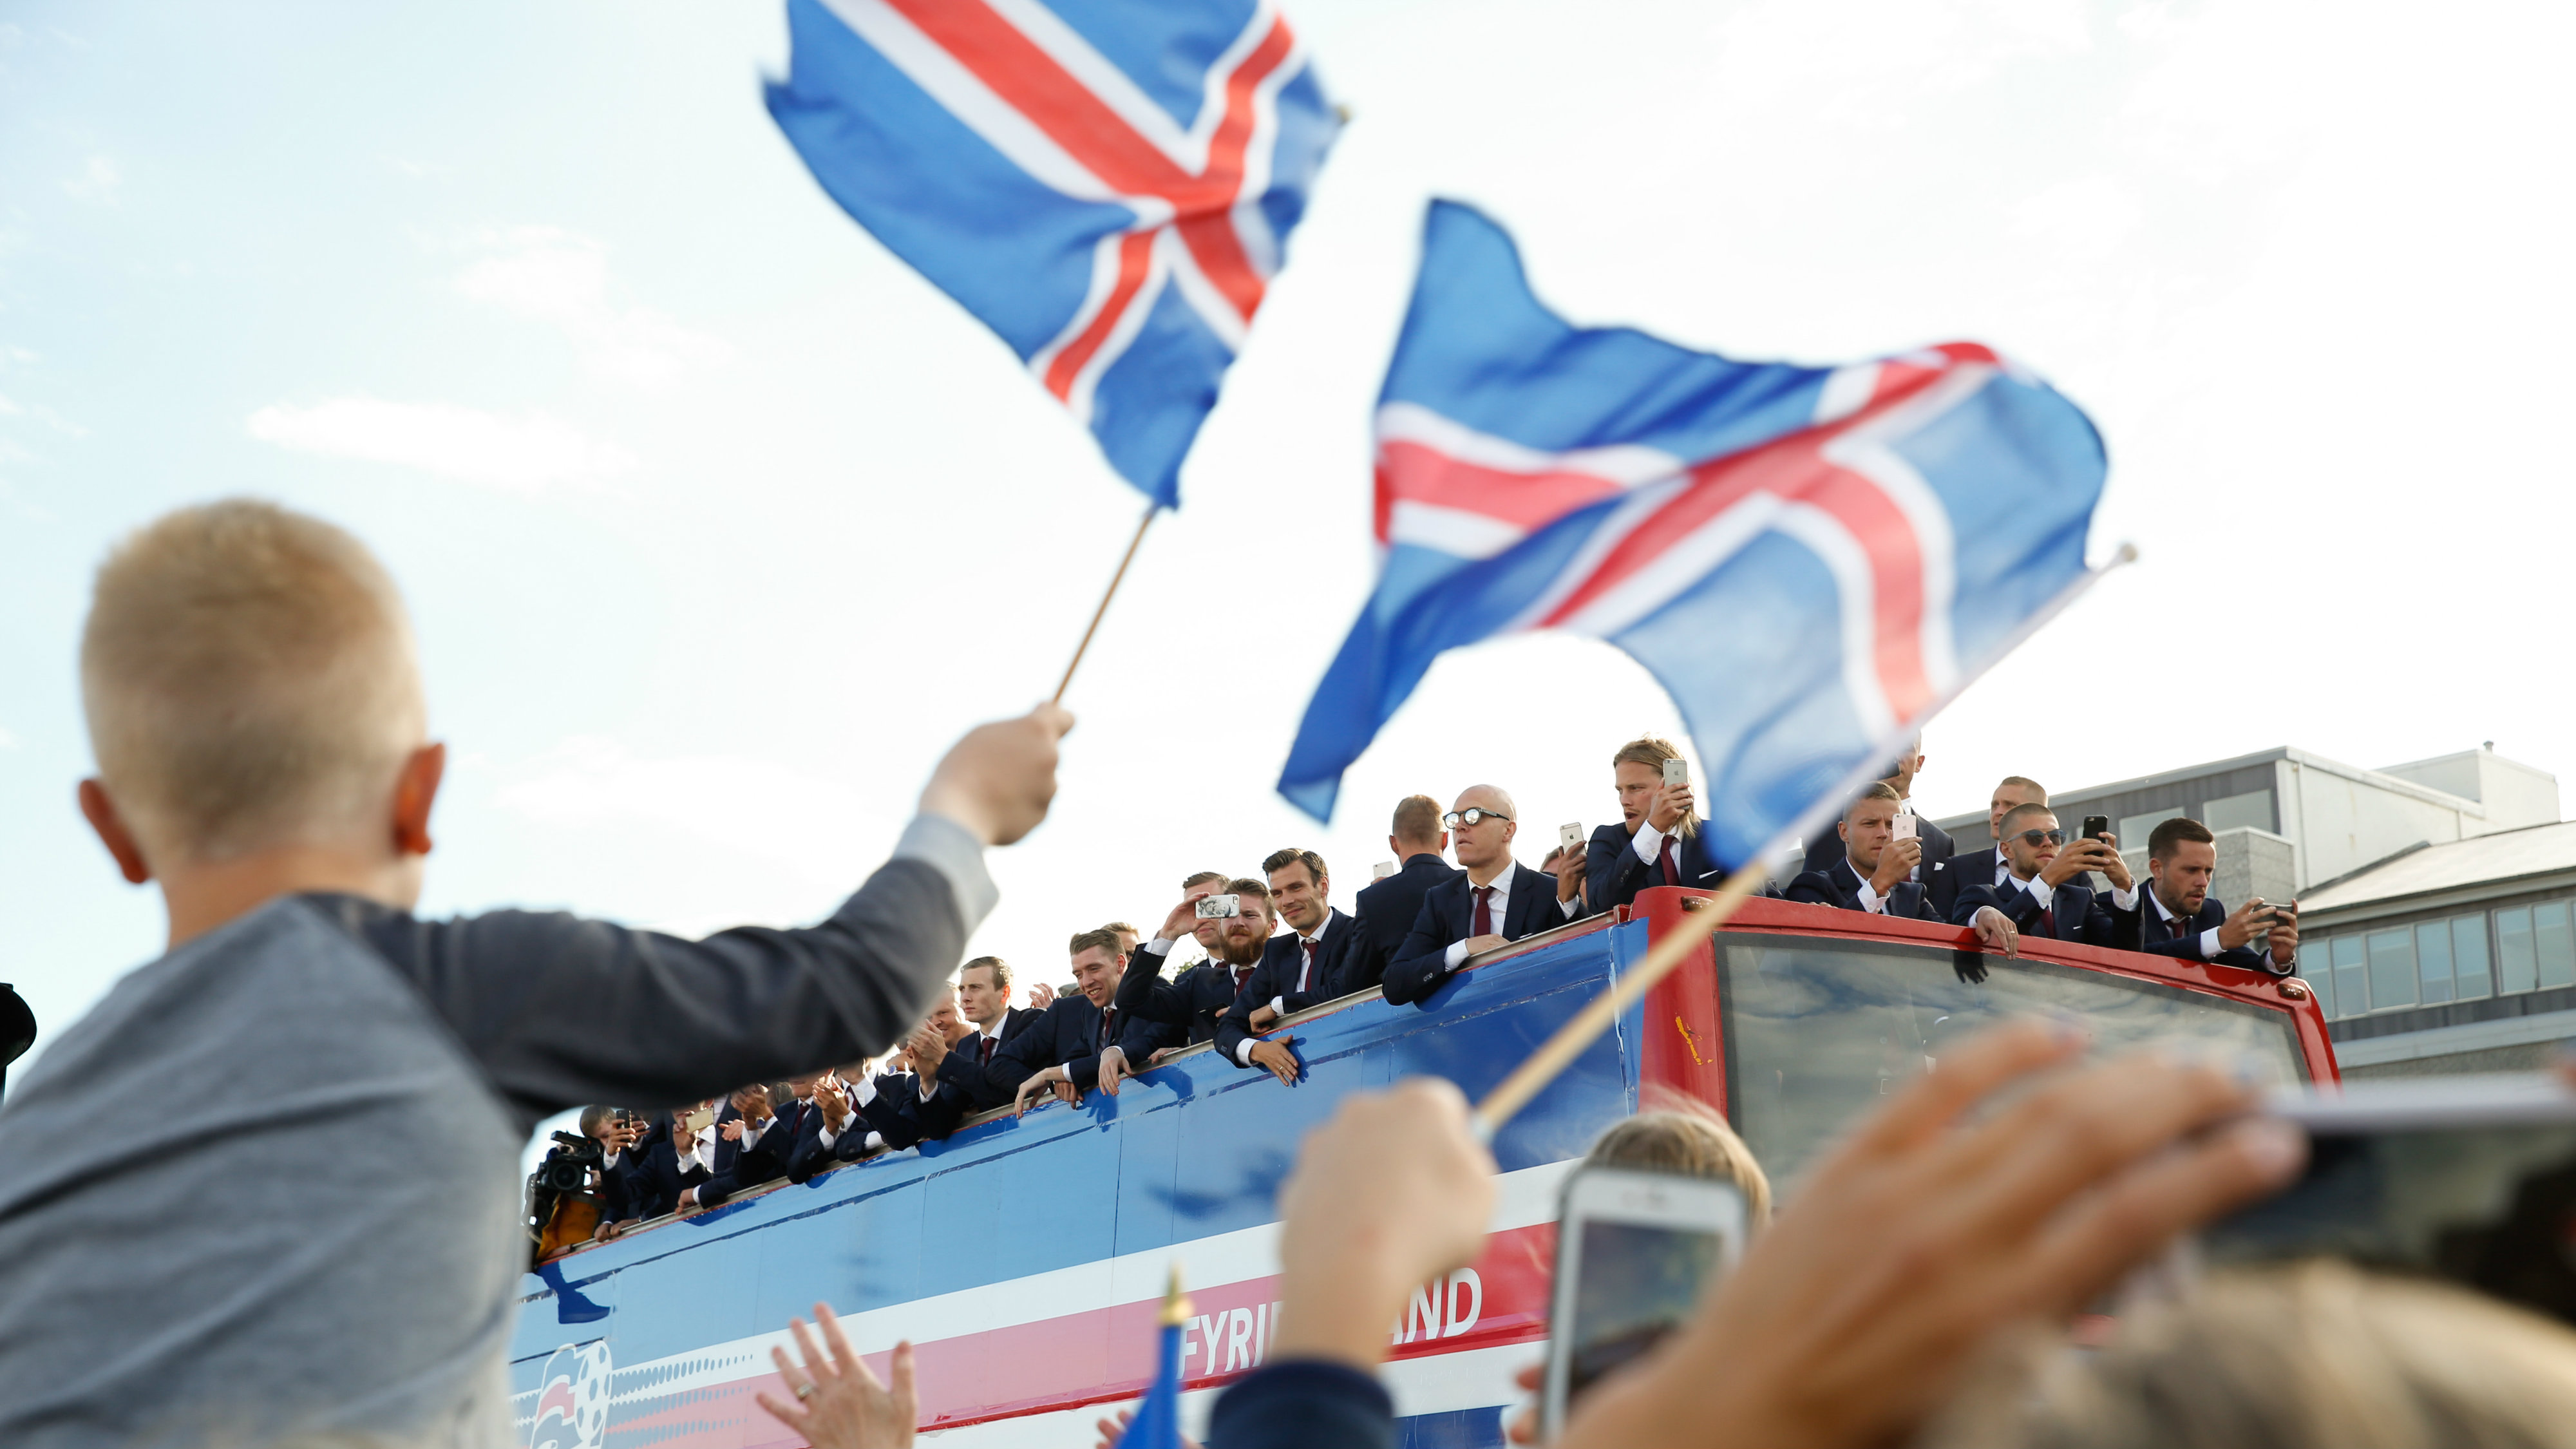 If you're undecided on a World Cup team to root for, pick Iceland